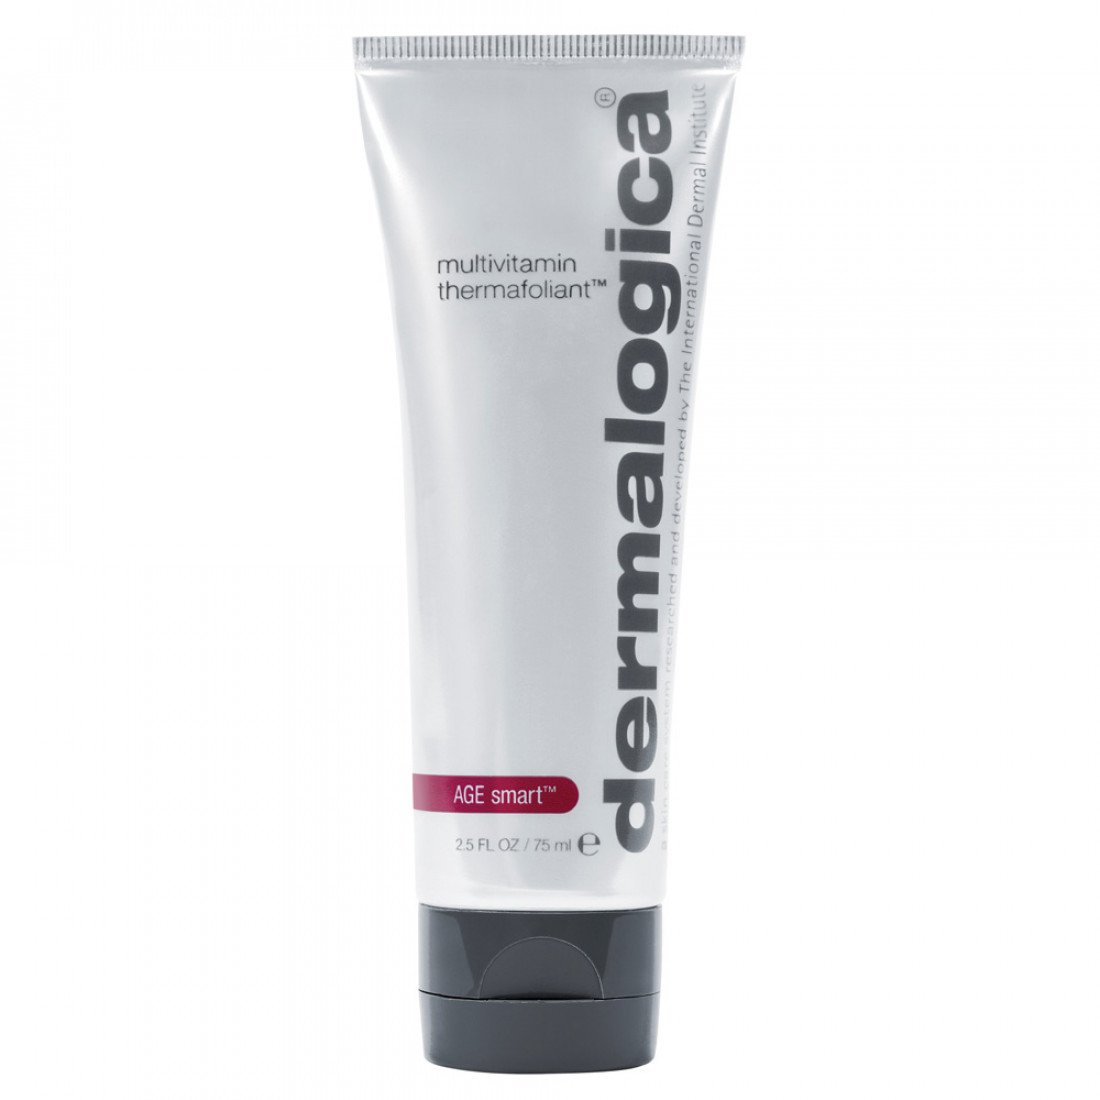 dermalogica_multivitamin_thermafoliant_75ml